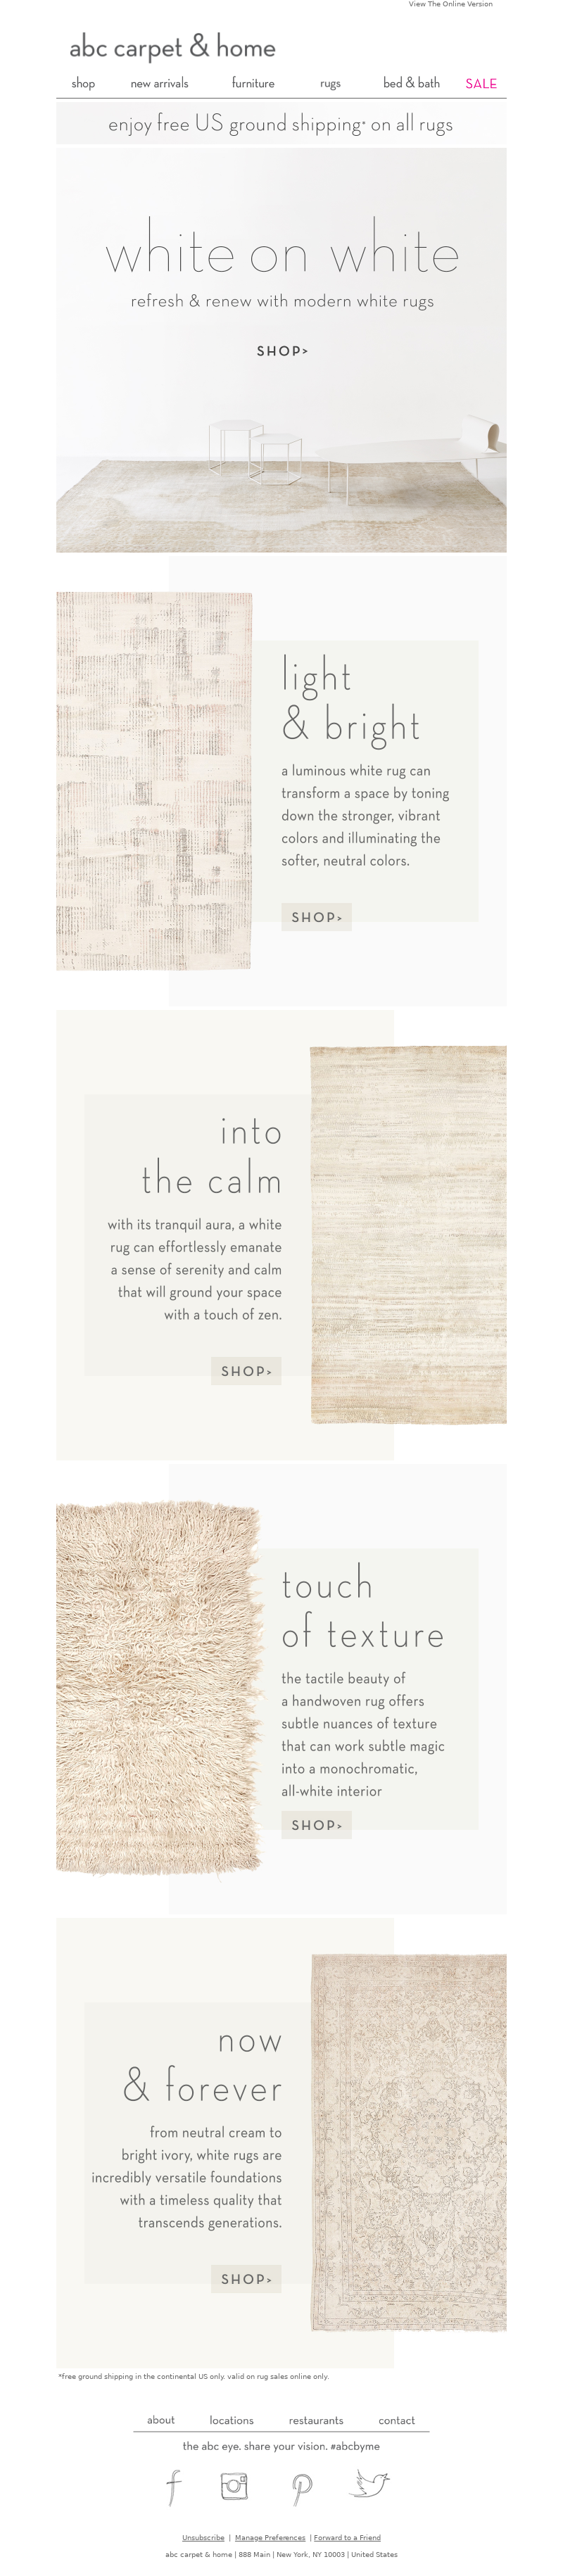 Labor Day Email Template from ABC Carpet & Home